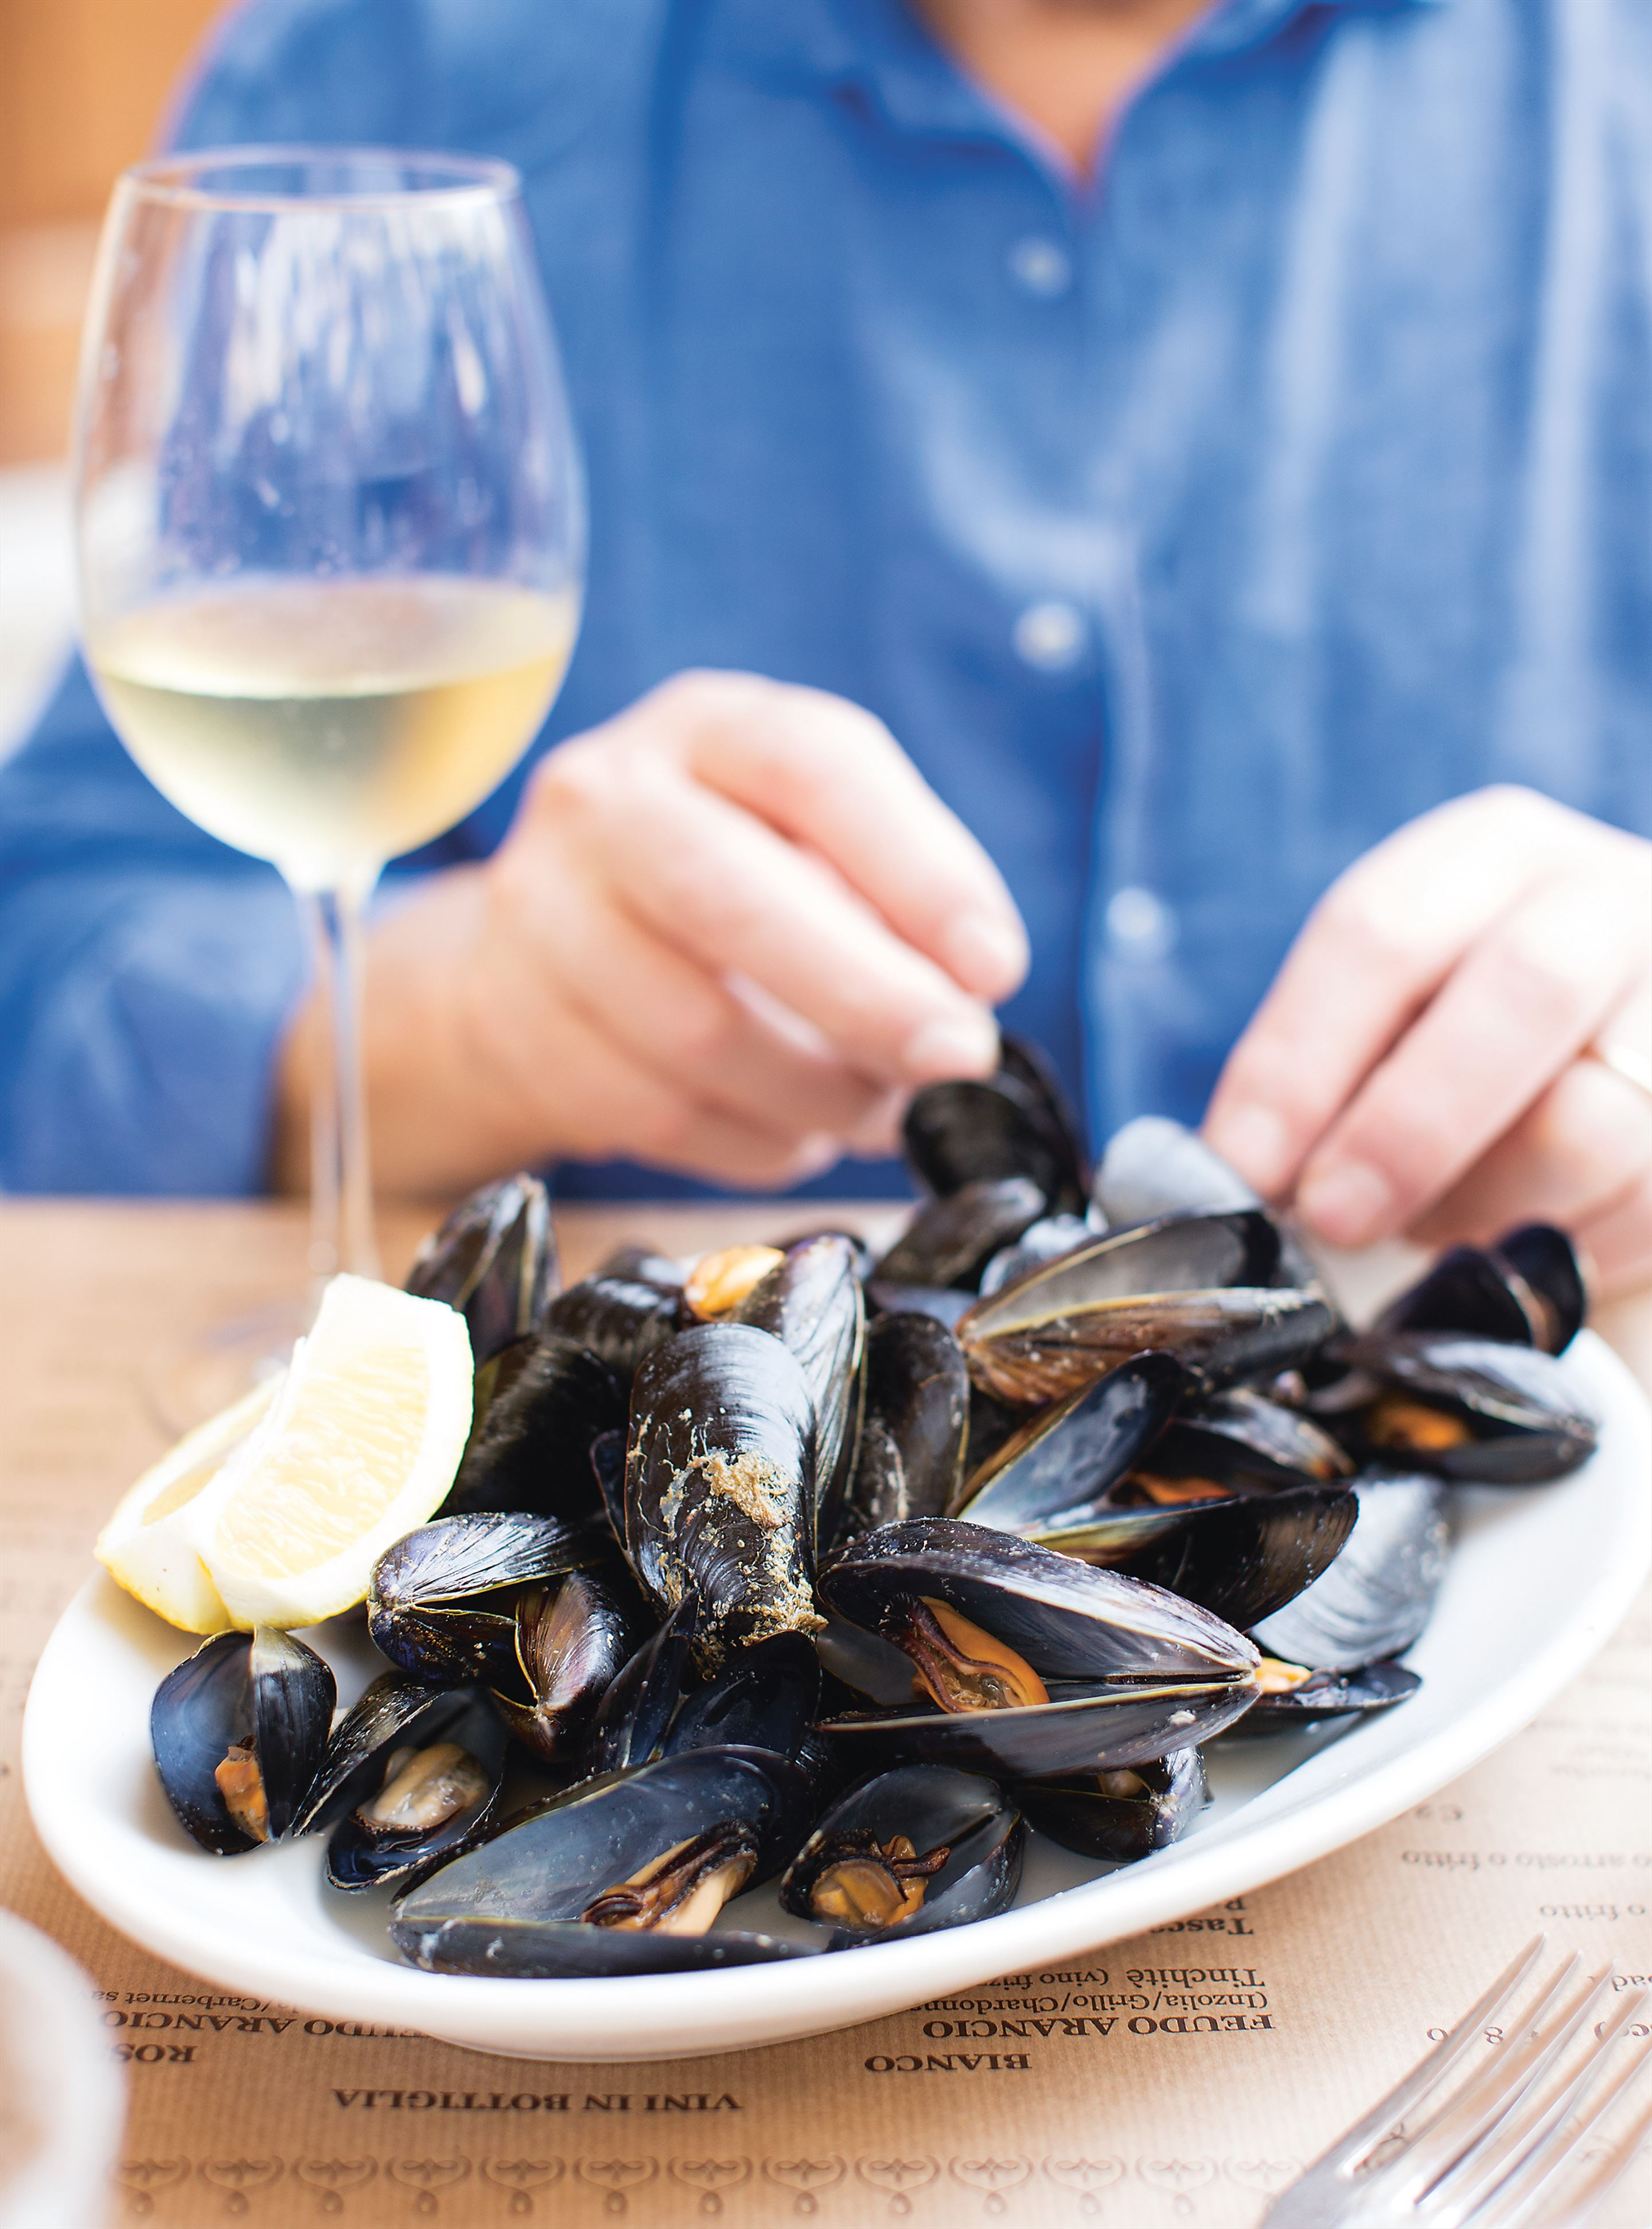 Sautéed mussels in garlic & white wine